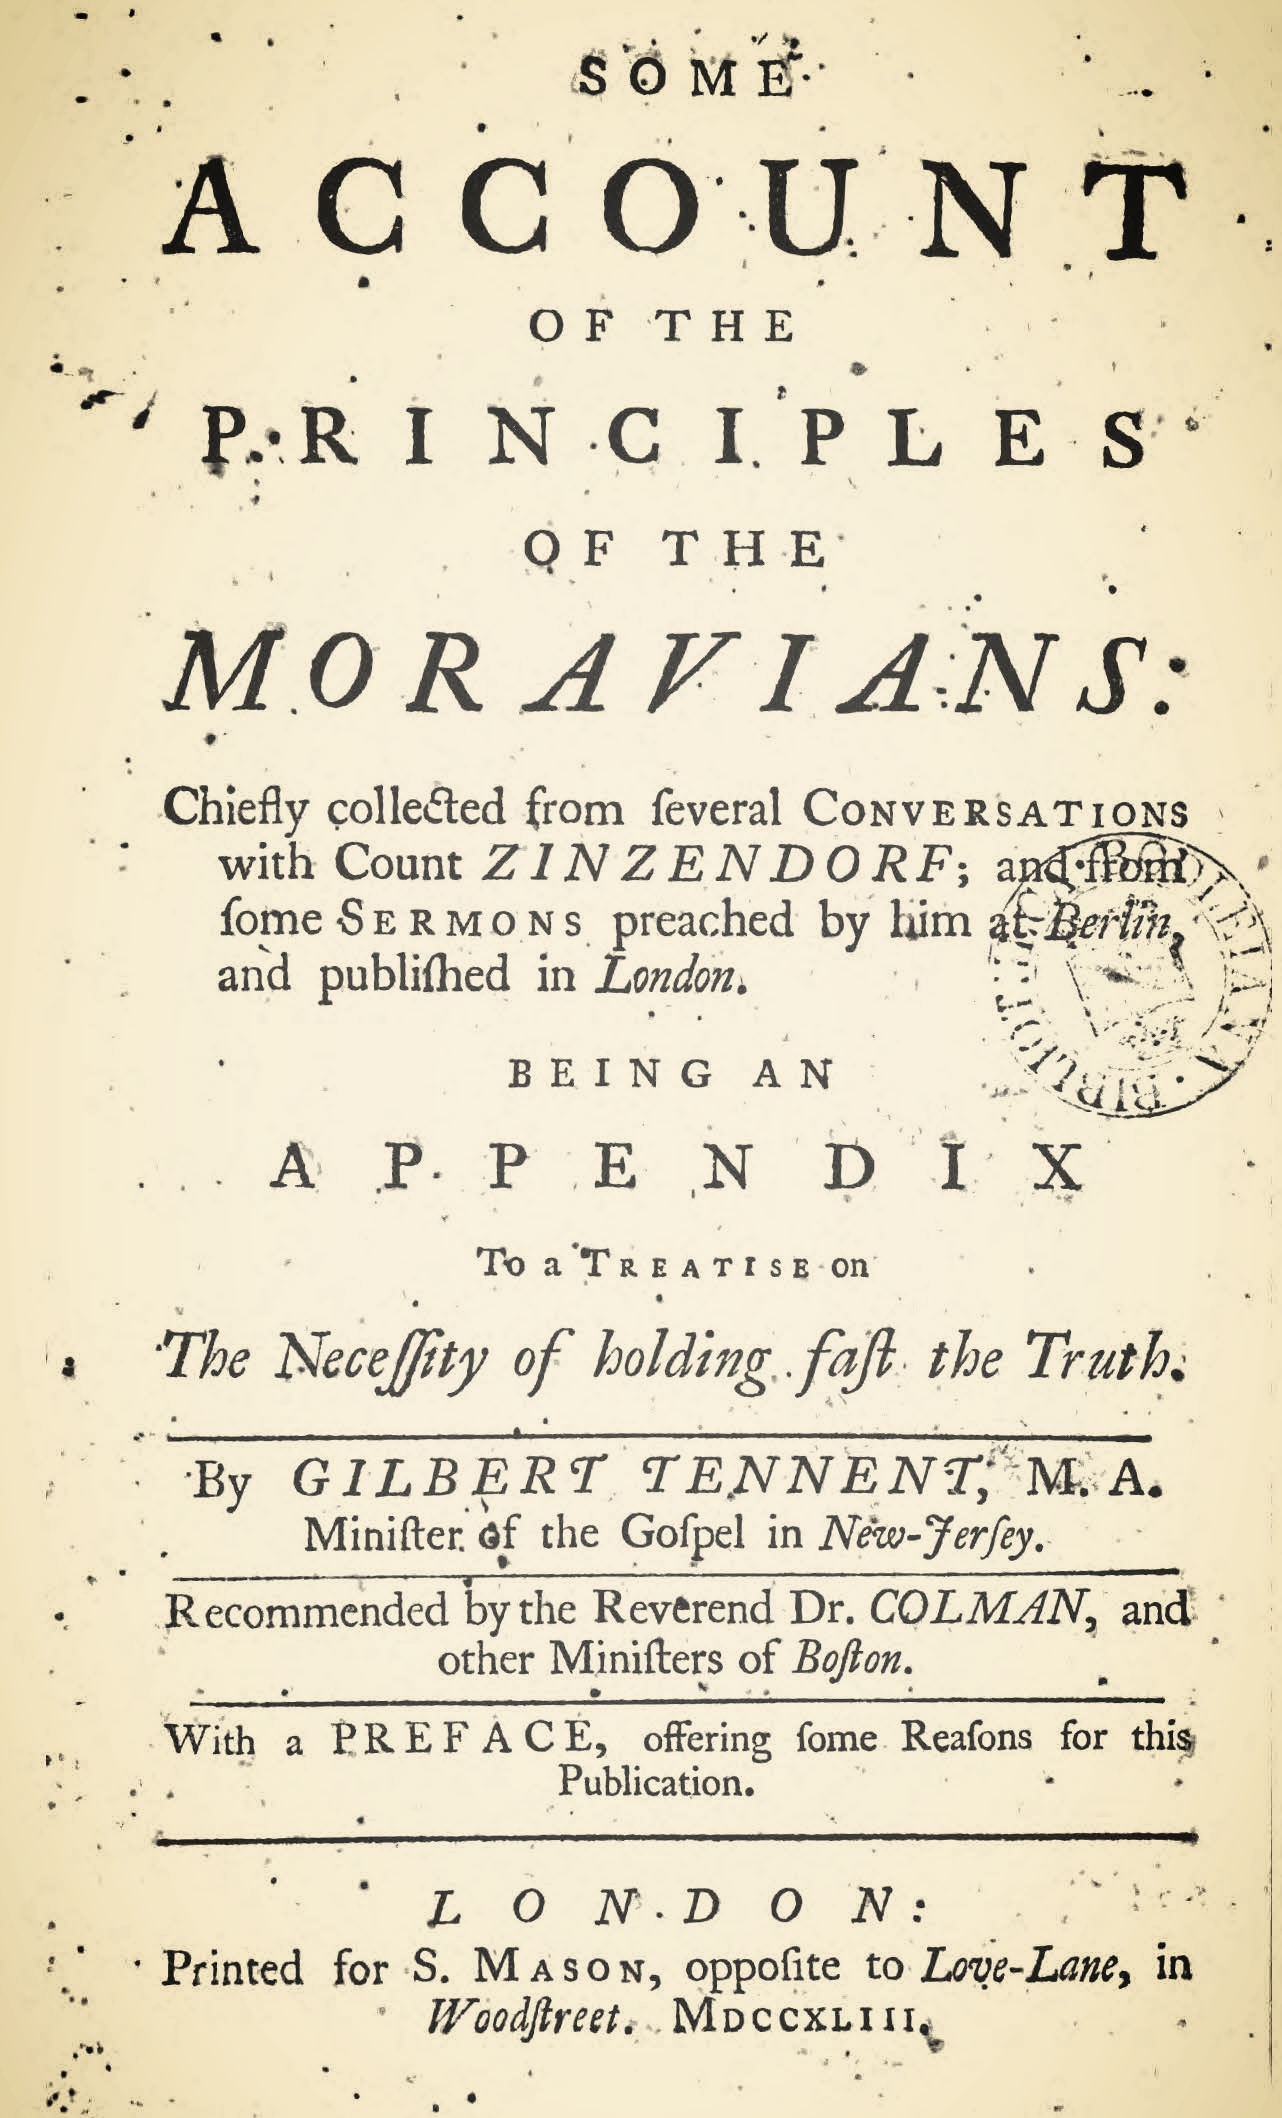 Tennent, Gilbert, Some Account of the Principles of the Moravians Title Page.jpg